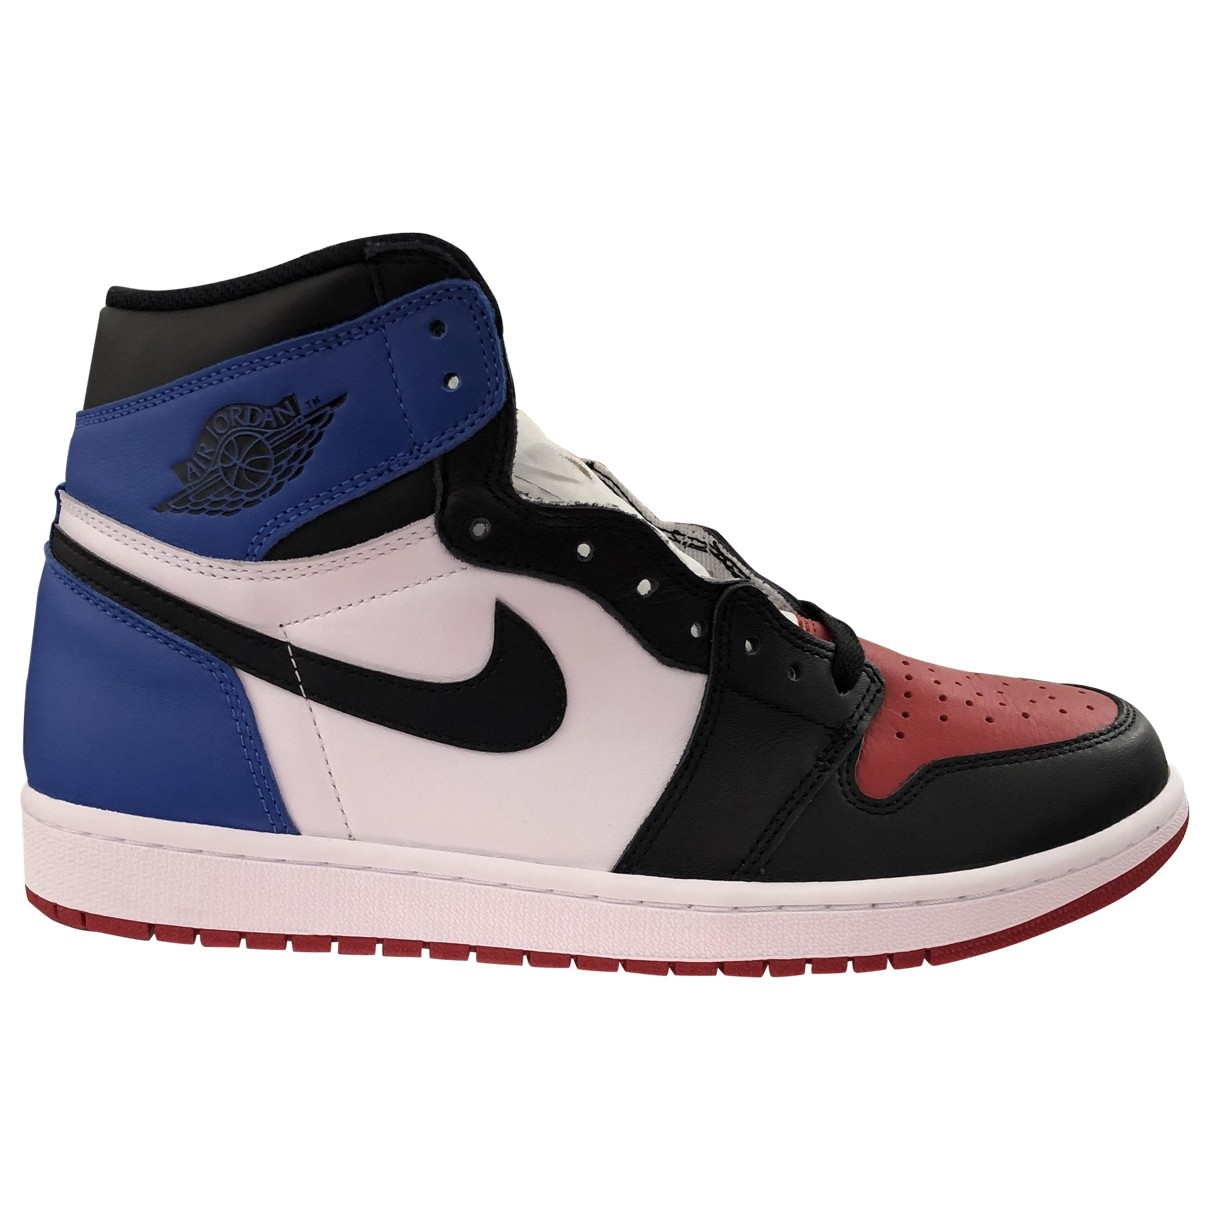 Jordan Air Jordan 1  Leather Trainers for Men 8 US